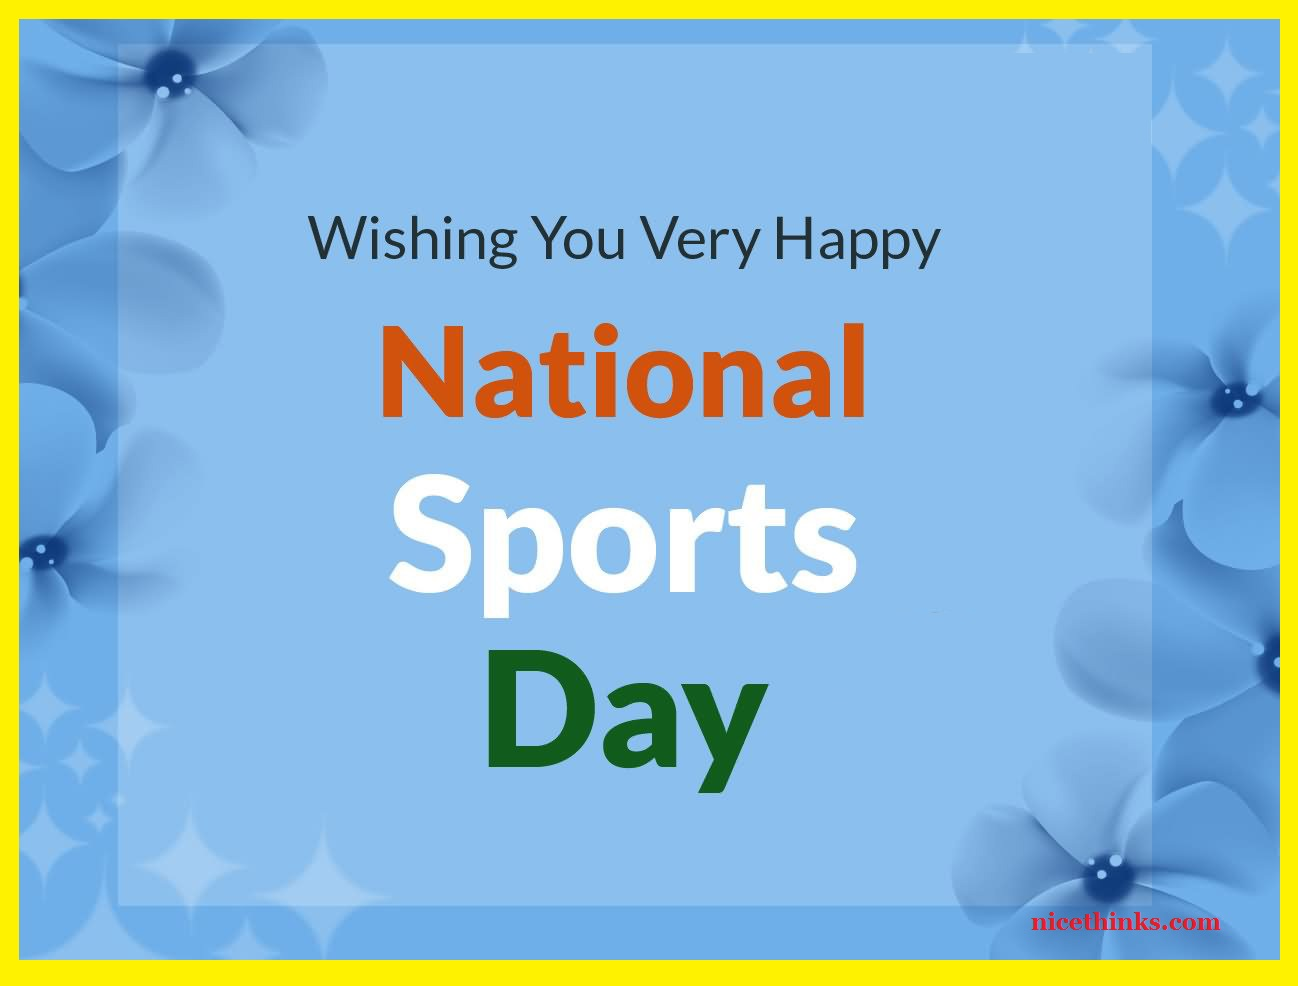 National Sports Day Greetings